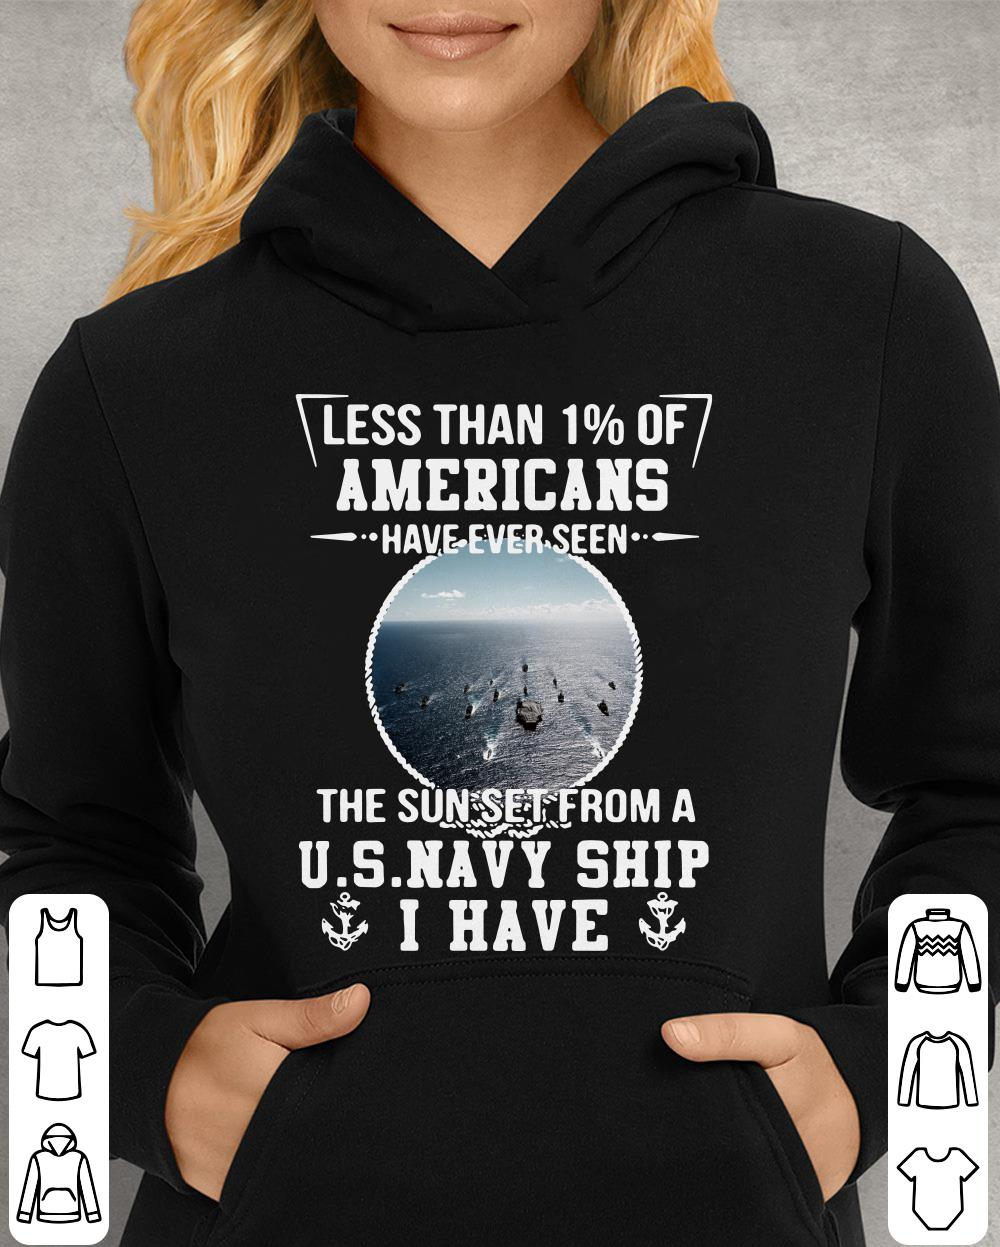 https://unicornshirts.net/images/2018/12/Less-than-1-of-Americans-have-ever-seen-the-sun-set-from-US-Navy-Ship-shirt_4.jpg